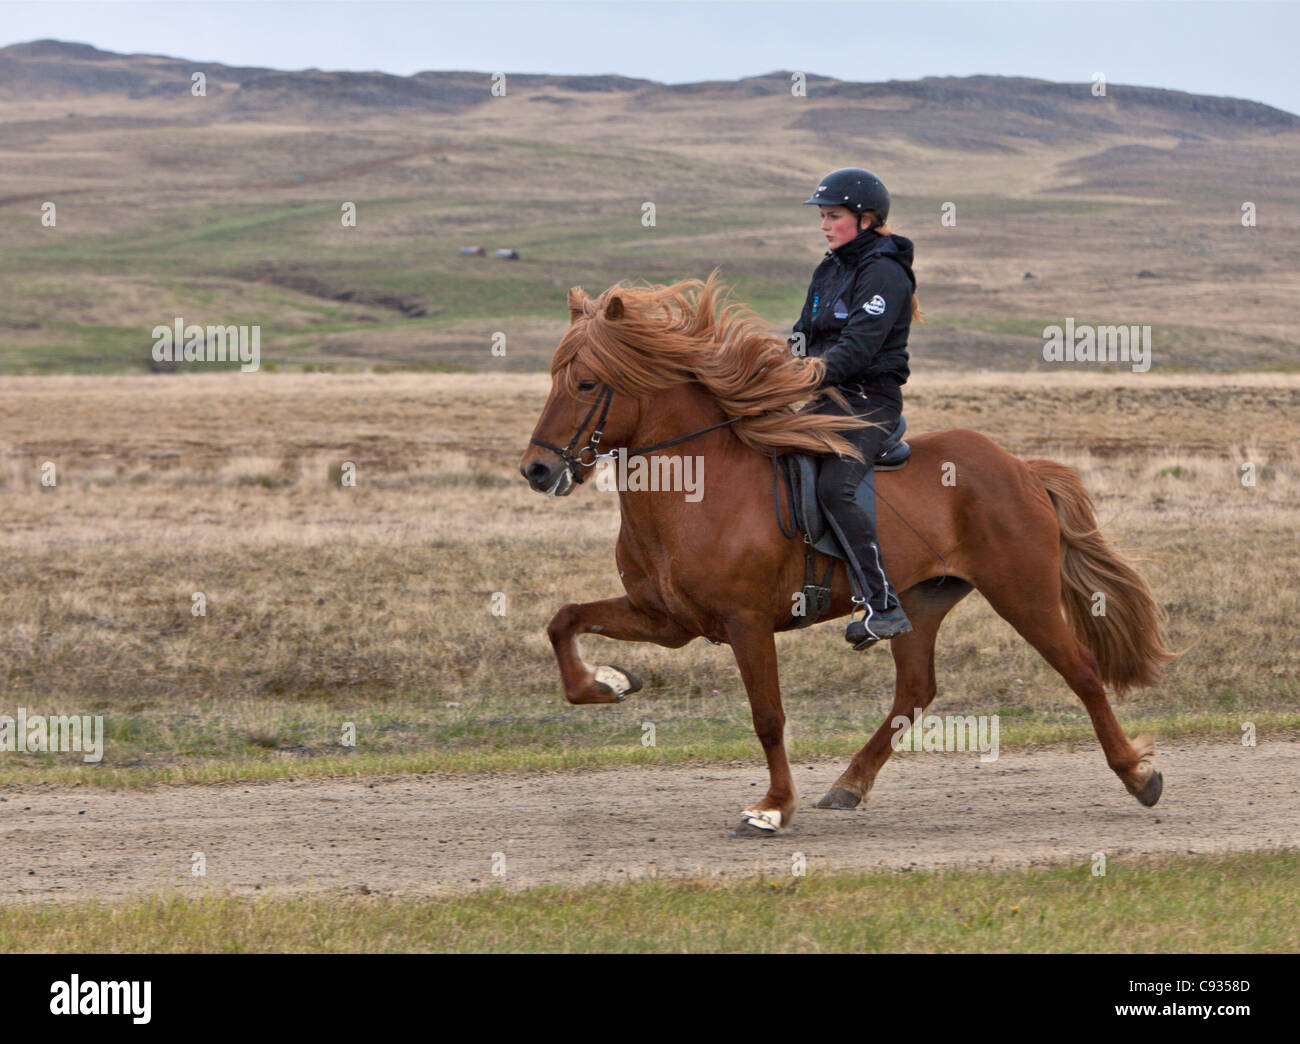 A horsewoman riding her Icelandic horse with the prancing high-step gait called tolt. - Stock Image